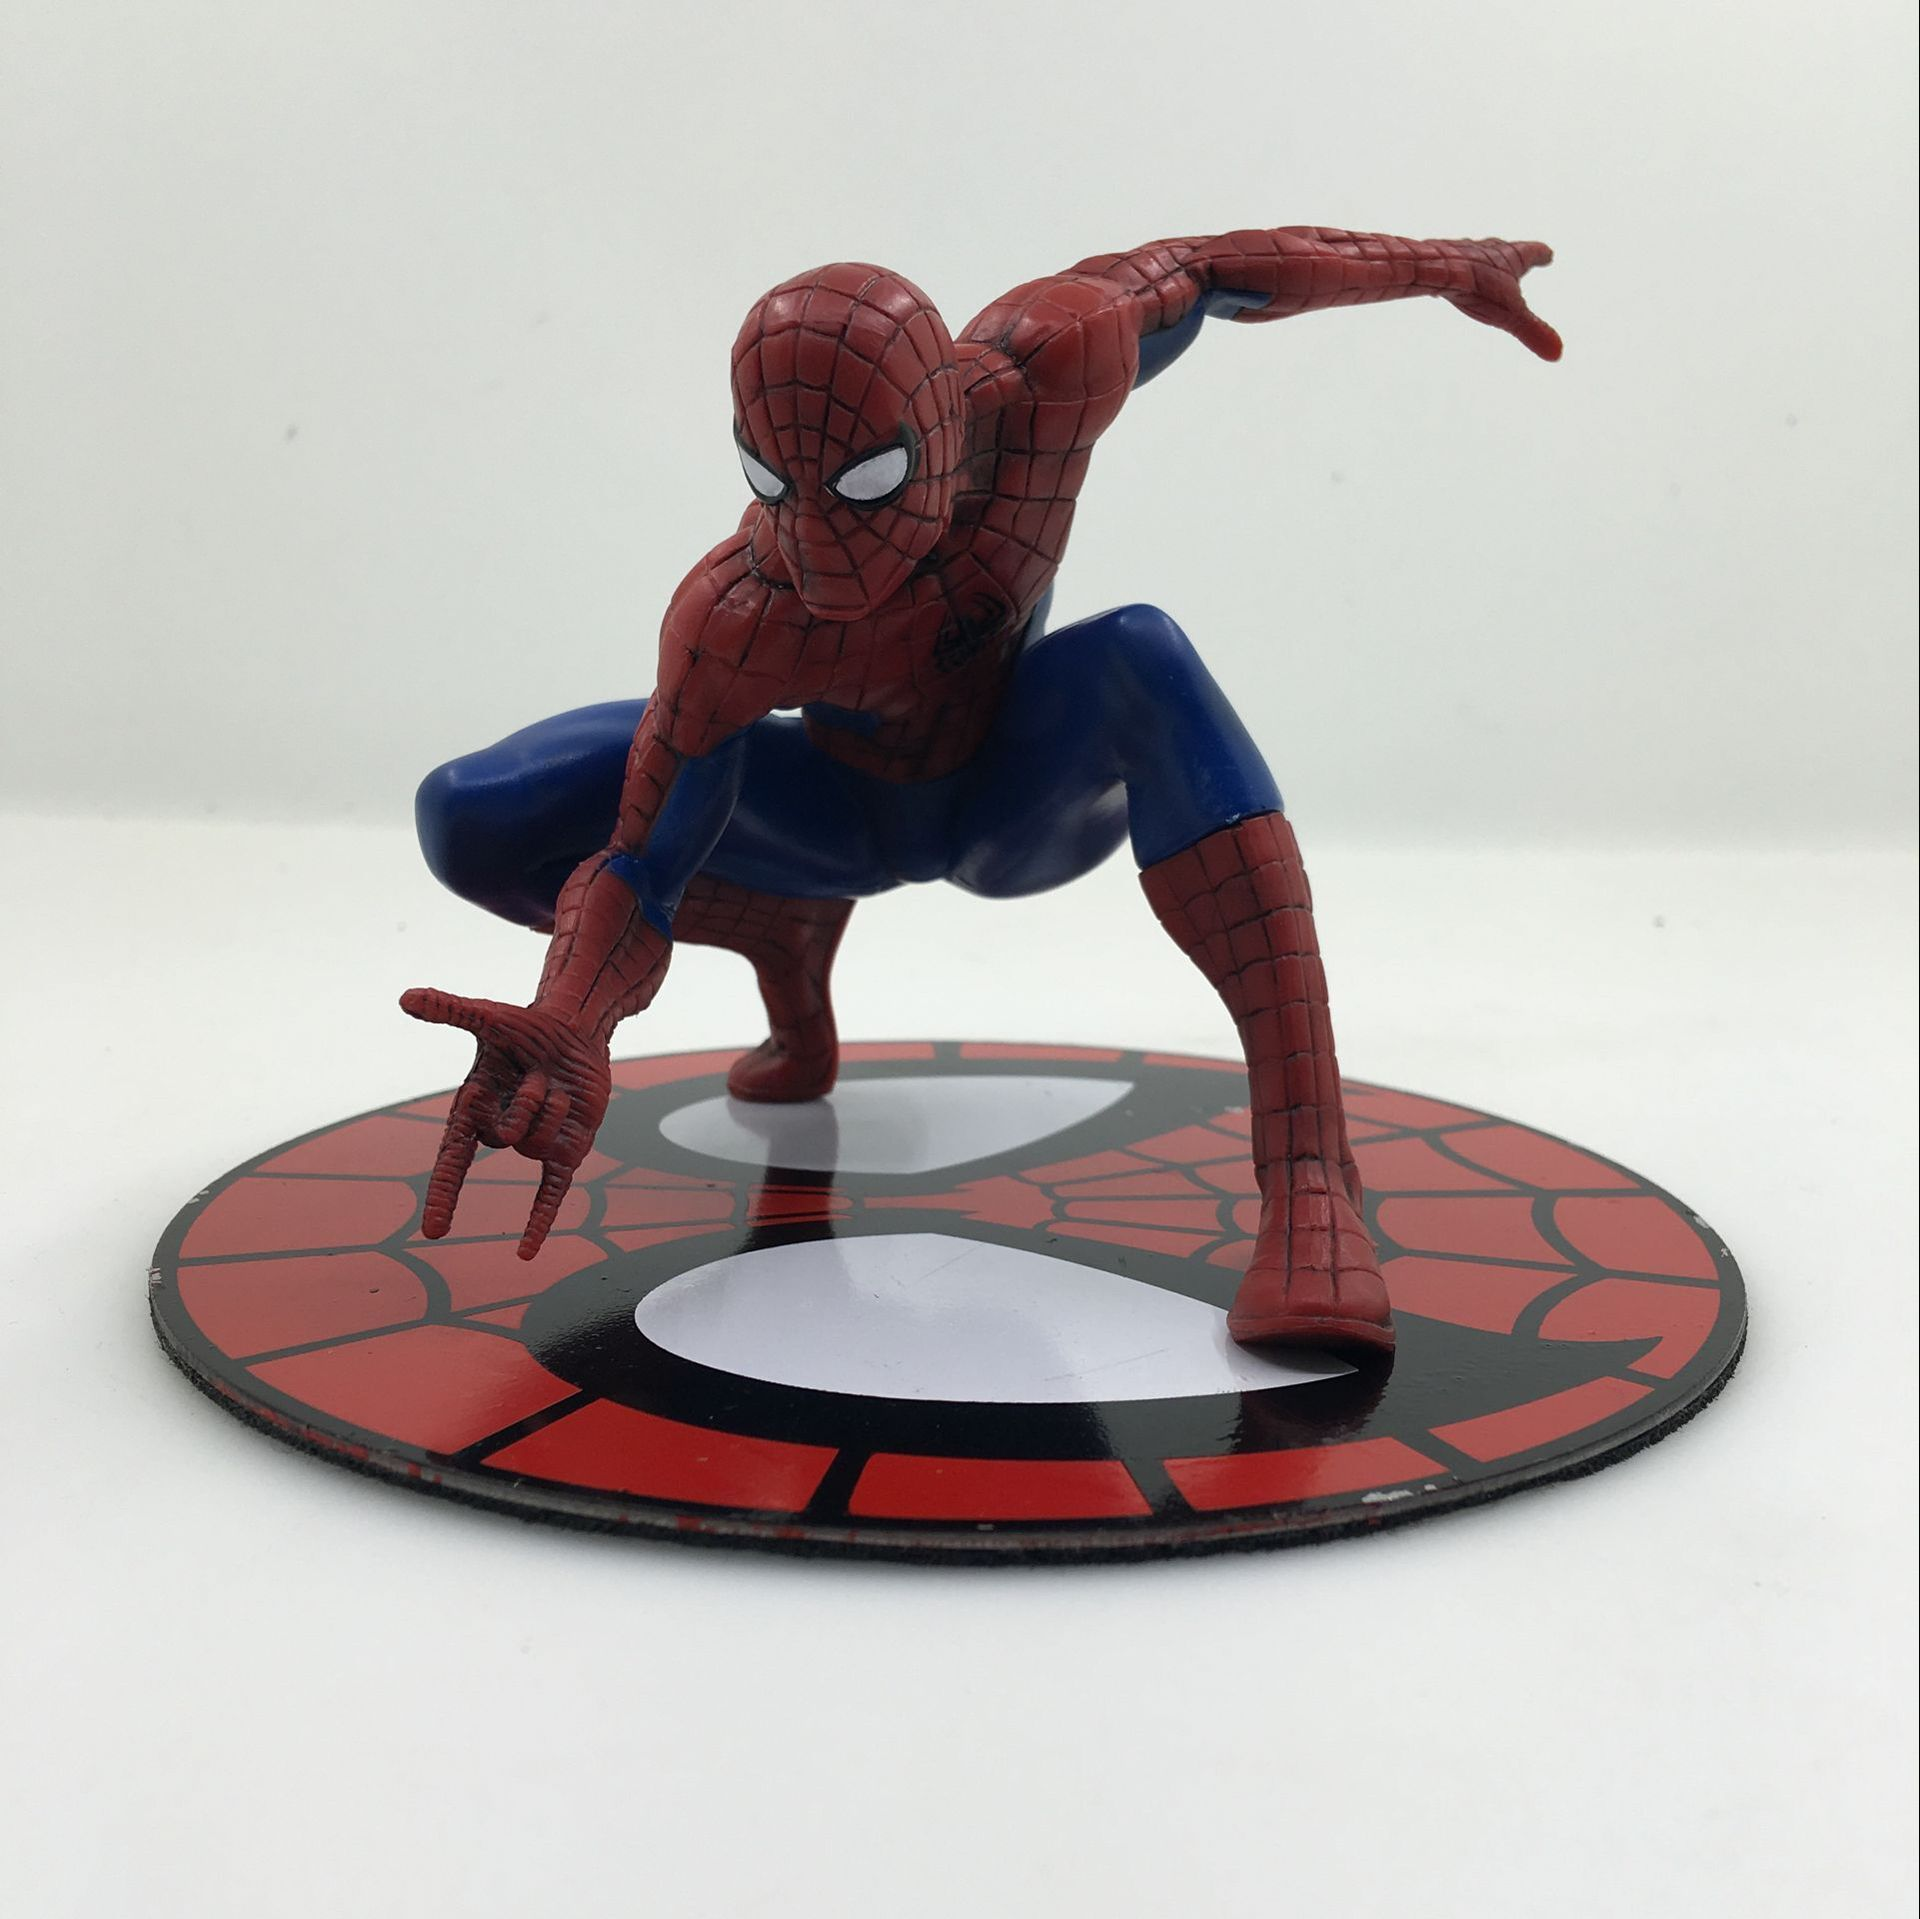 ARTFX + STATUE Spiderman The Amazing Spider-Man Action Figure Toy 12cm figma x man series spiderman figure no 001 revoltech deadpool with bracket no 002 revoltech spider man action figures